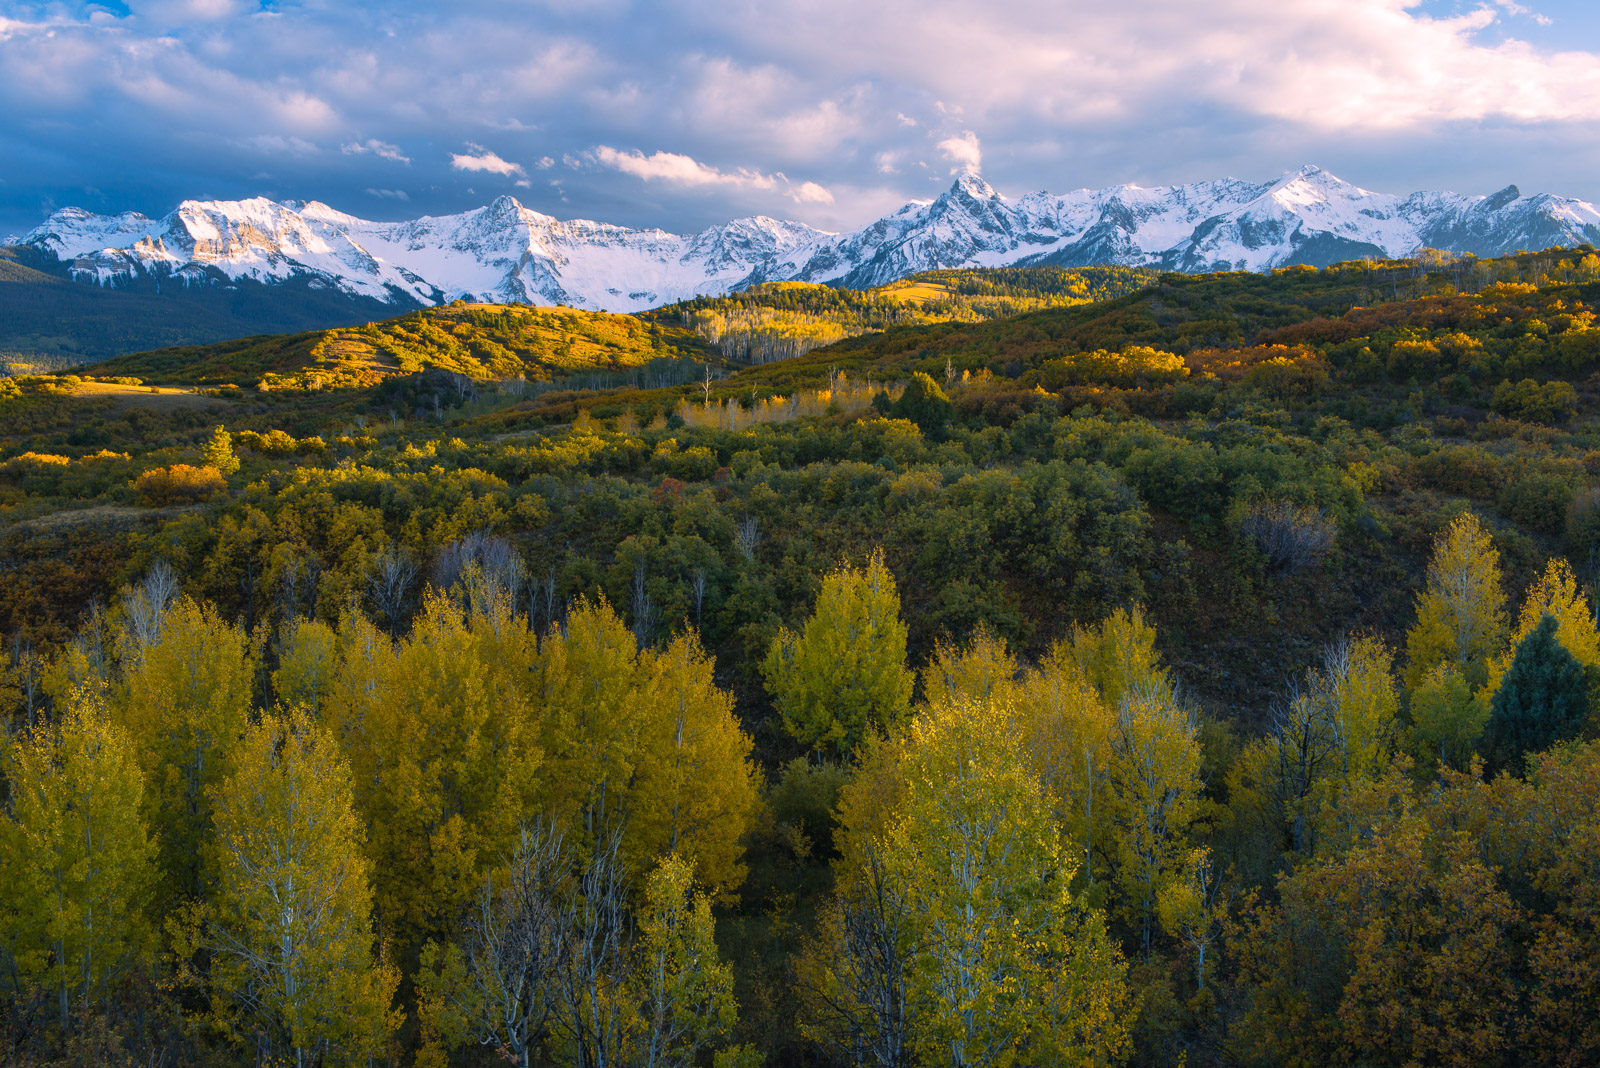 Early snowfall blankets the San Juan Mountains with glorious autumn color captured at sunset.